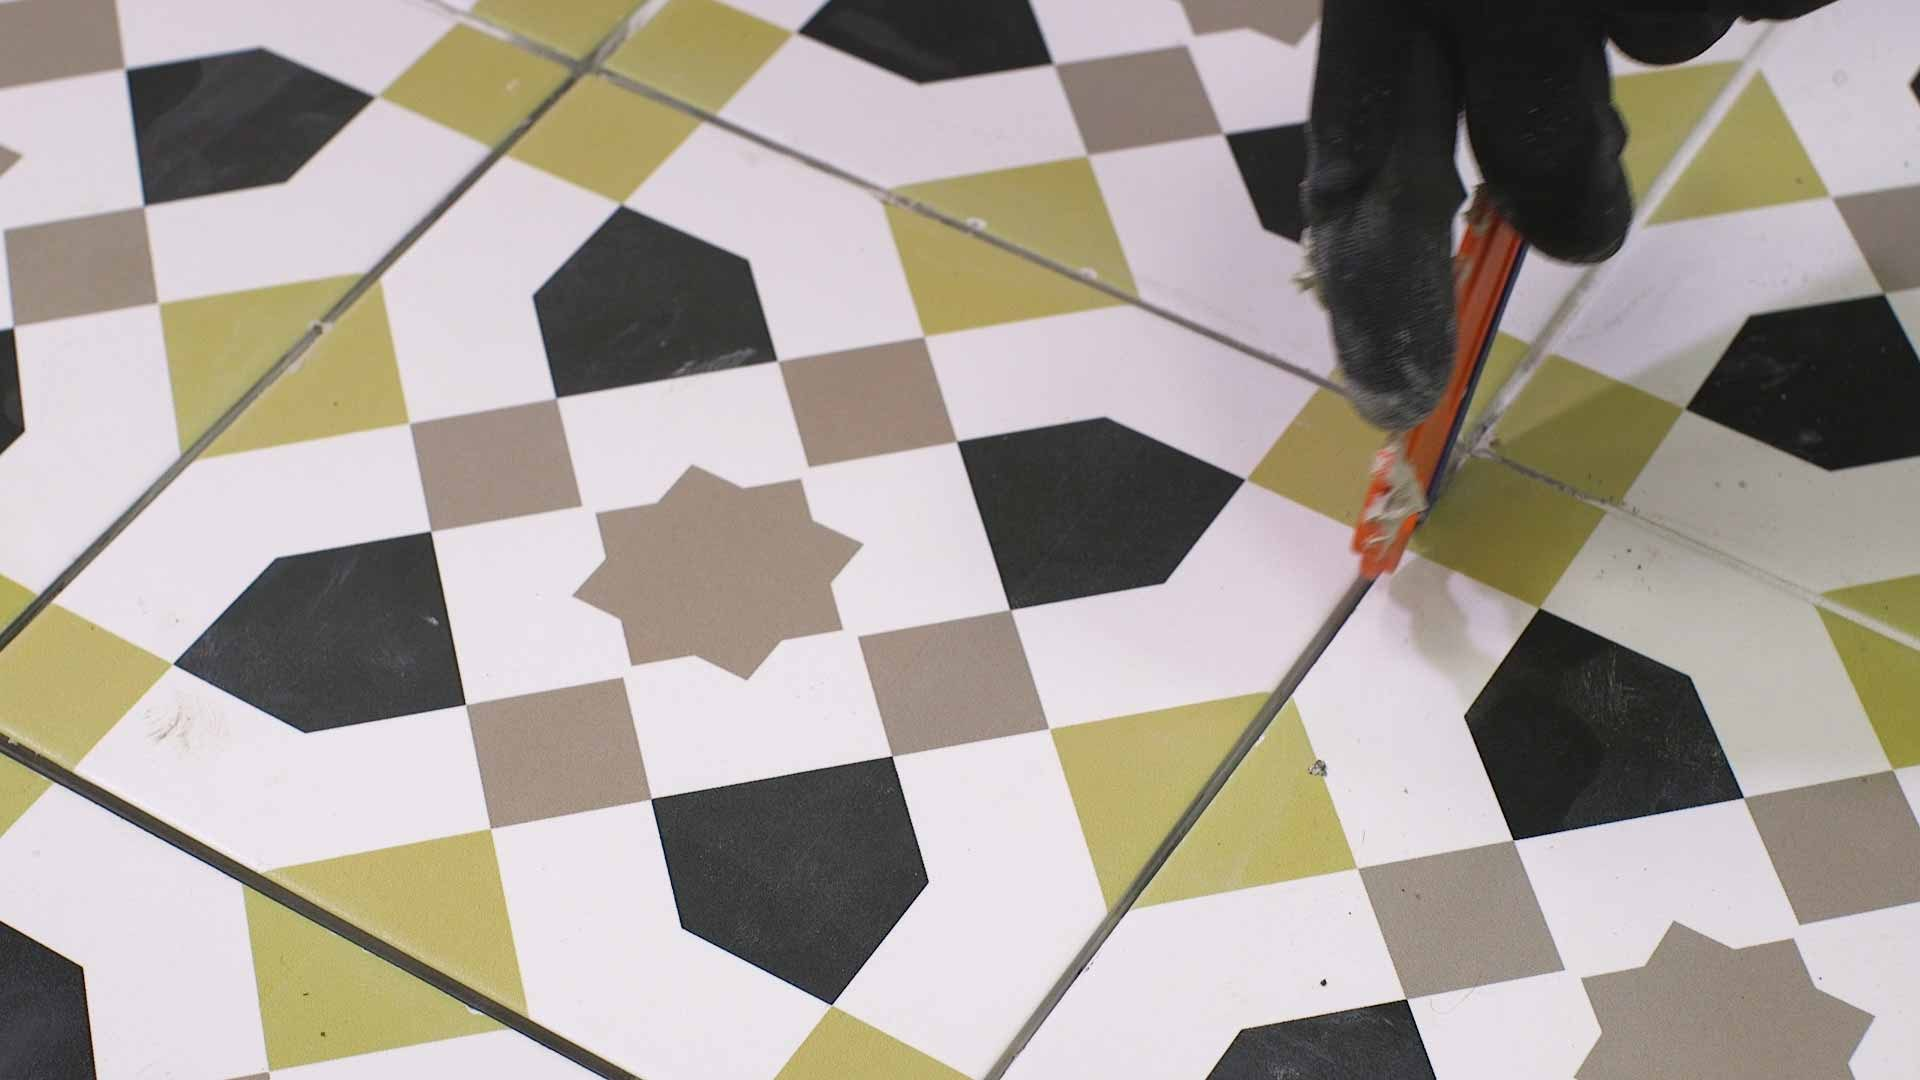 How to replace a damaged tile 8